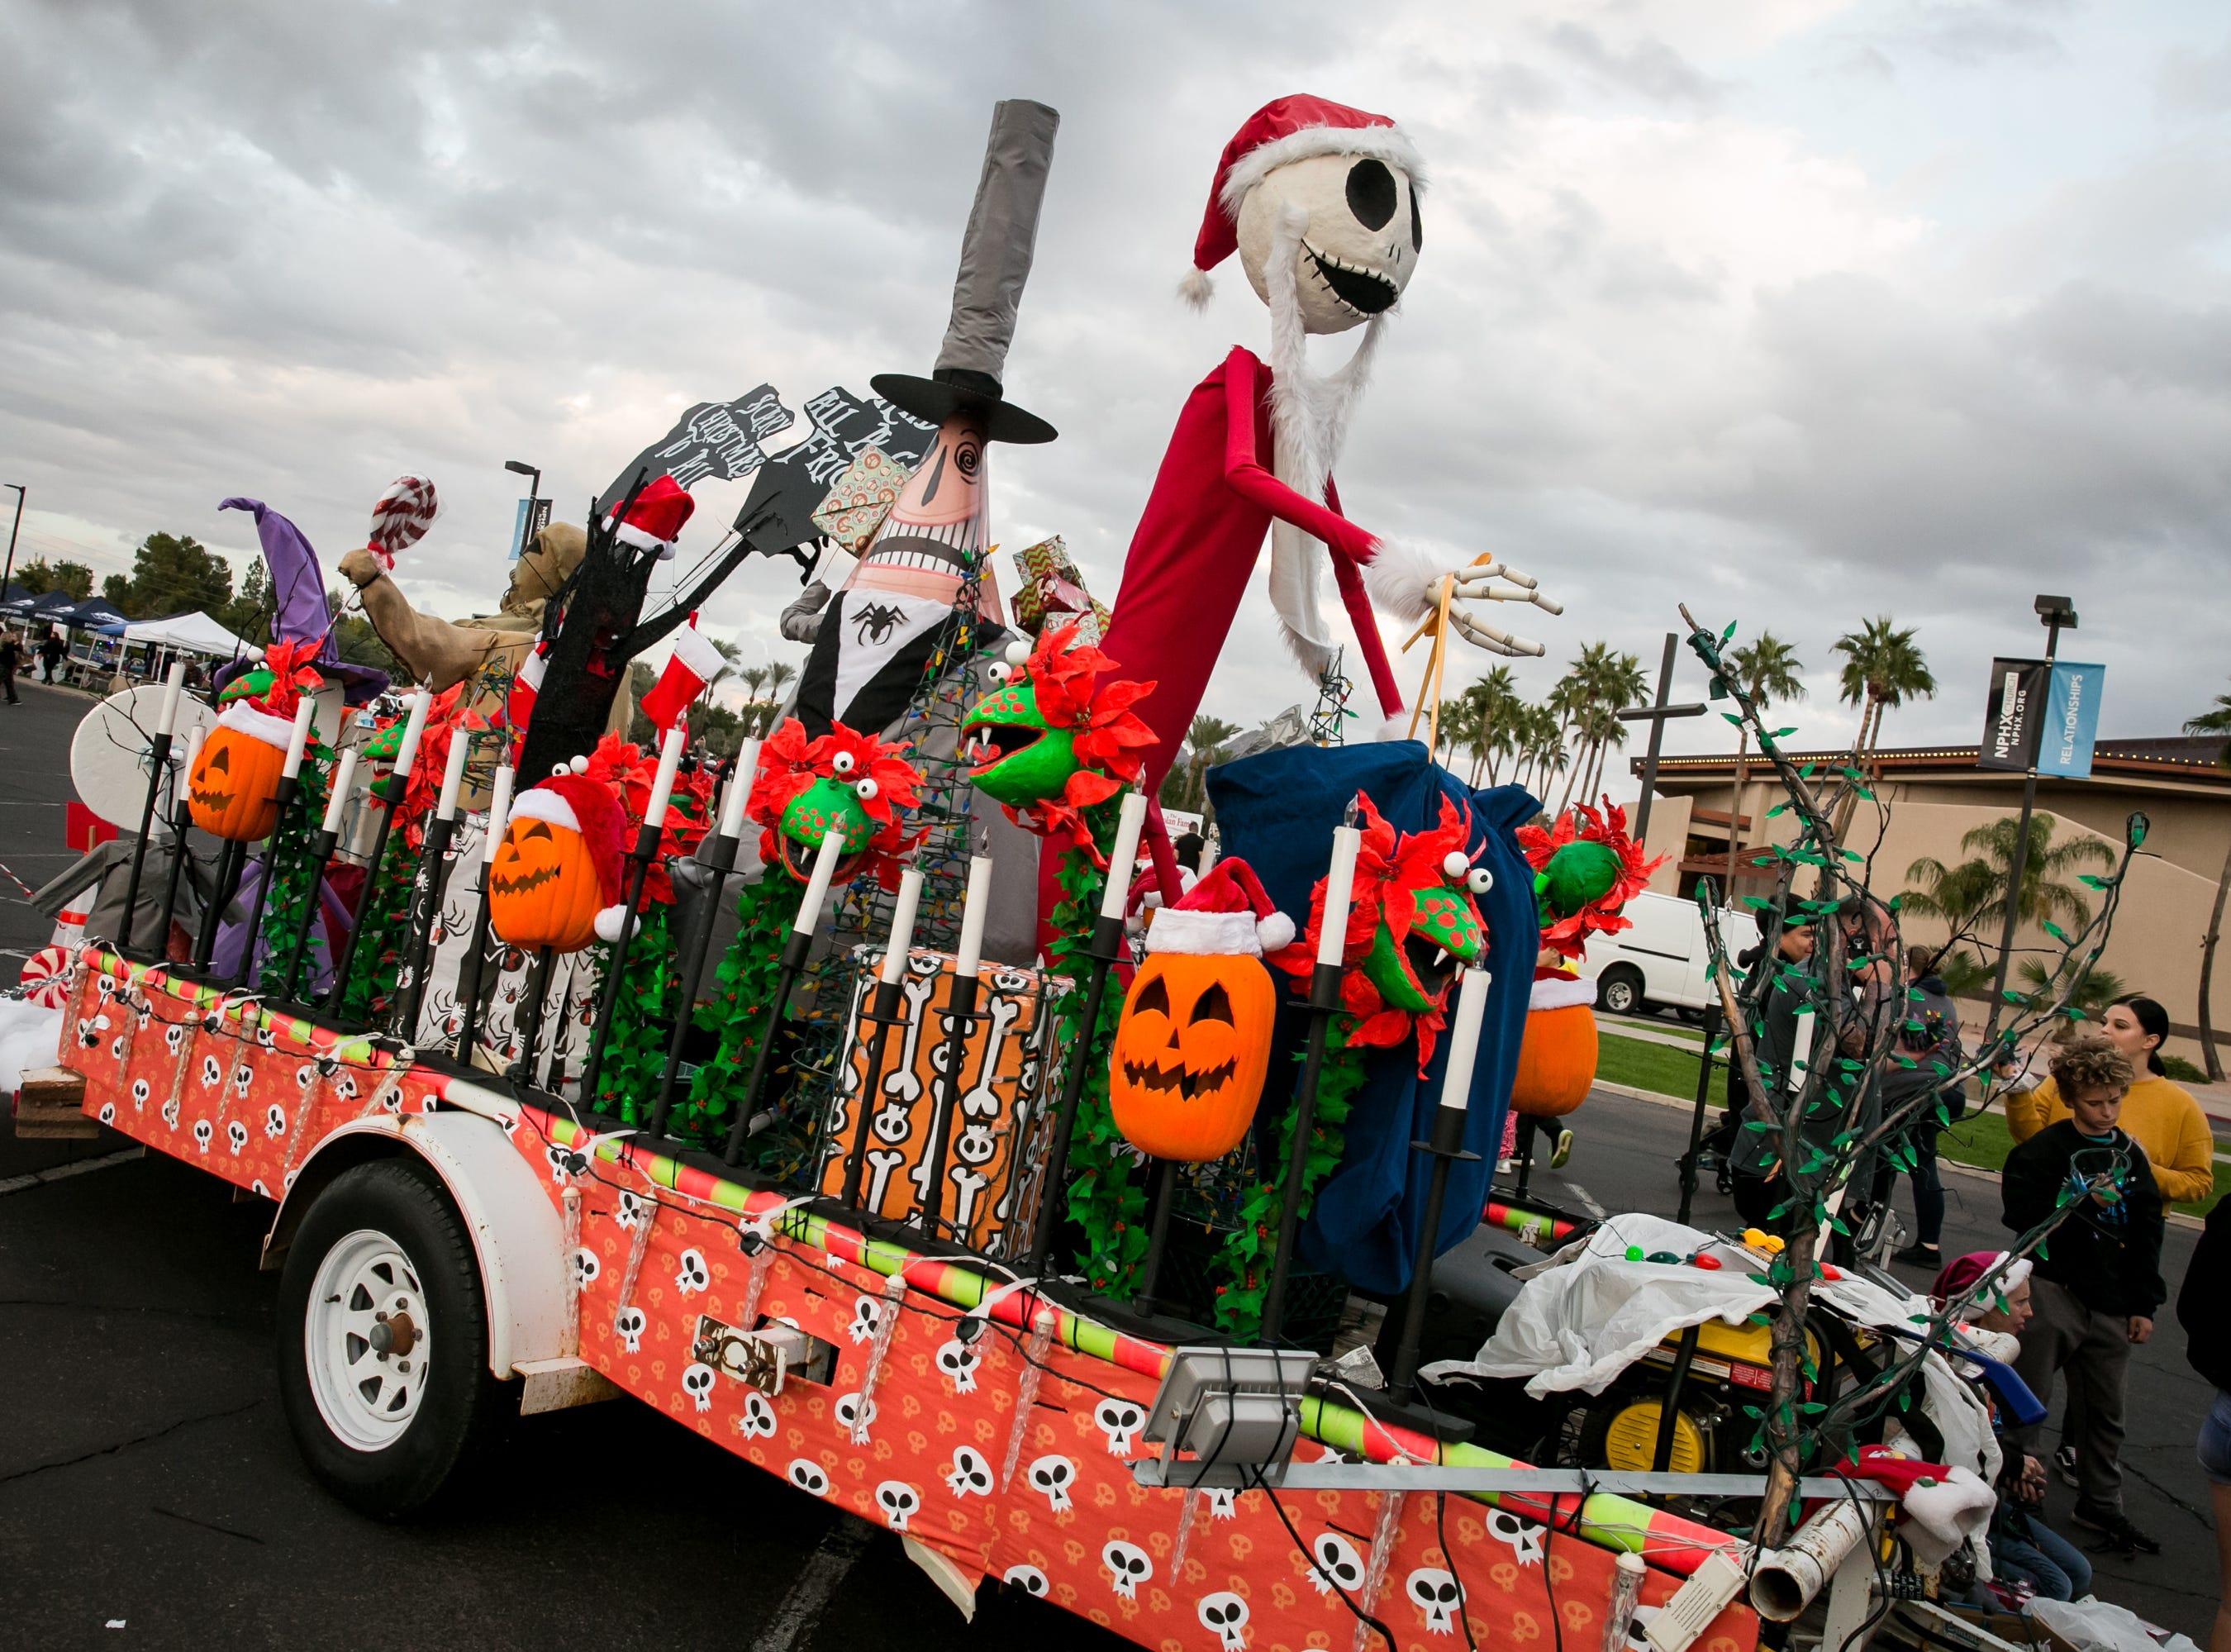 This awesome Nightmare Before Christmas float won the title of best community entry during the APS Electric Light Parade in Central Phoenix on Saturday, December 1, 2018.